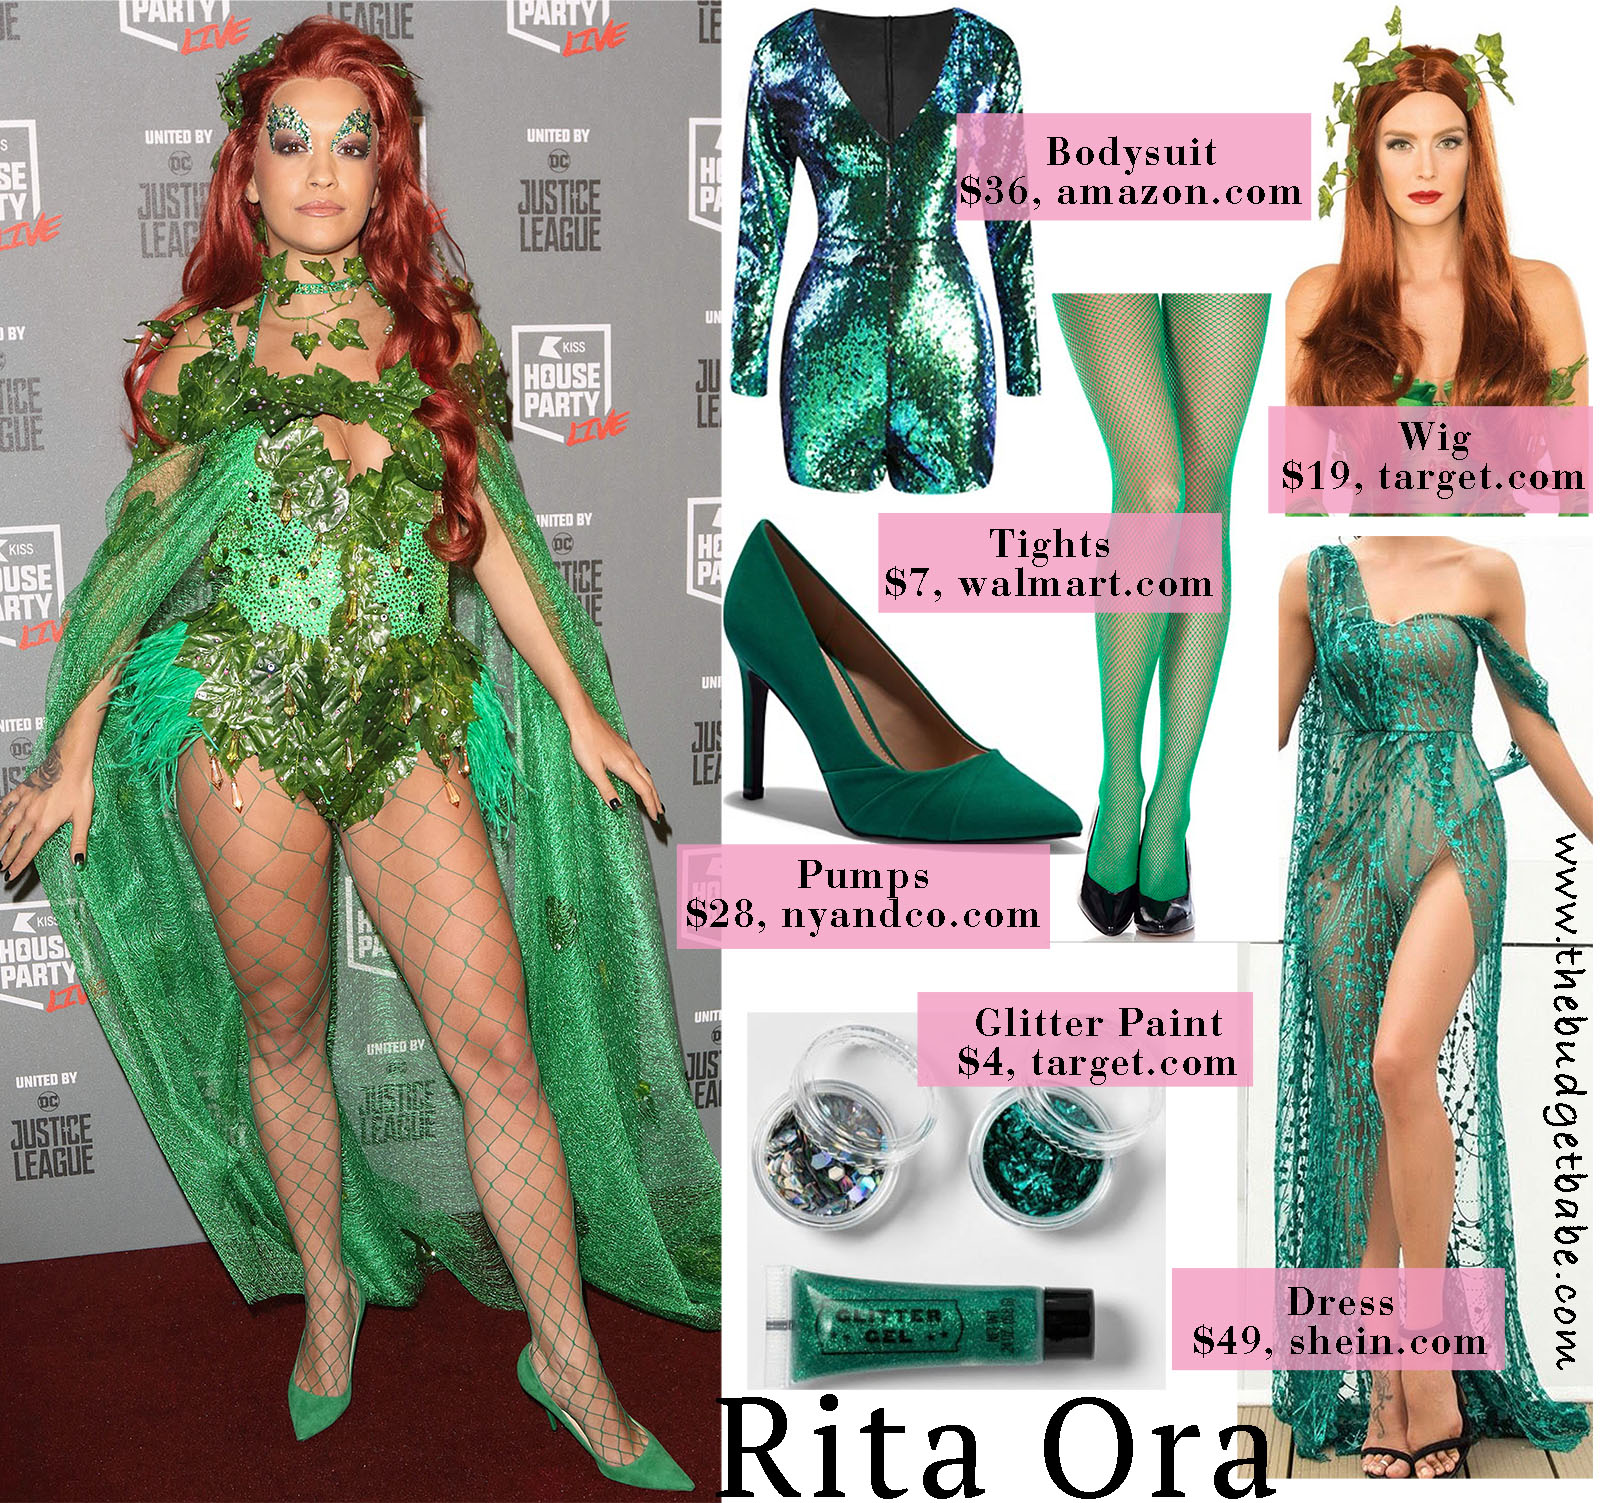 Rita Ora turns heads in a bright green costume!